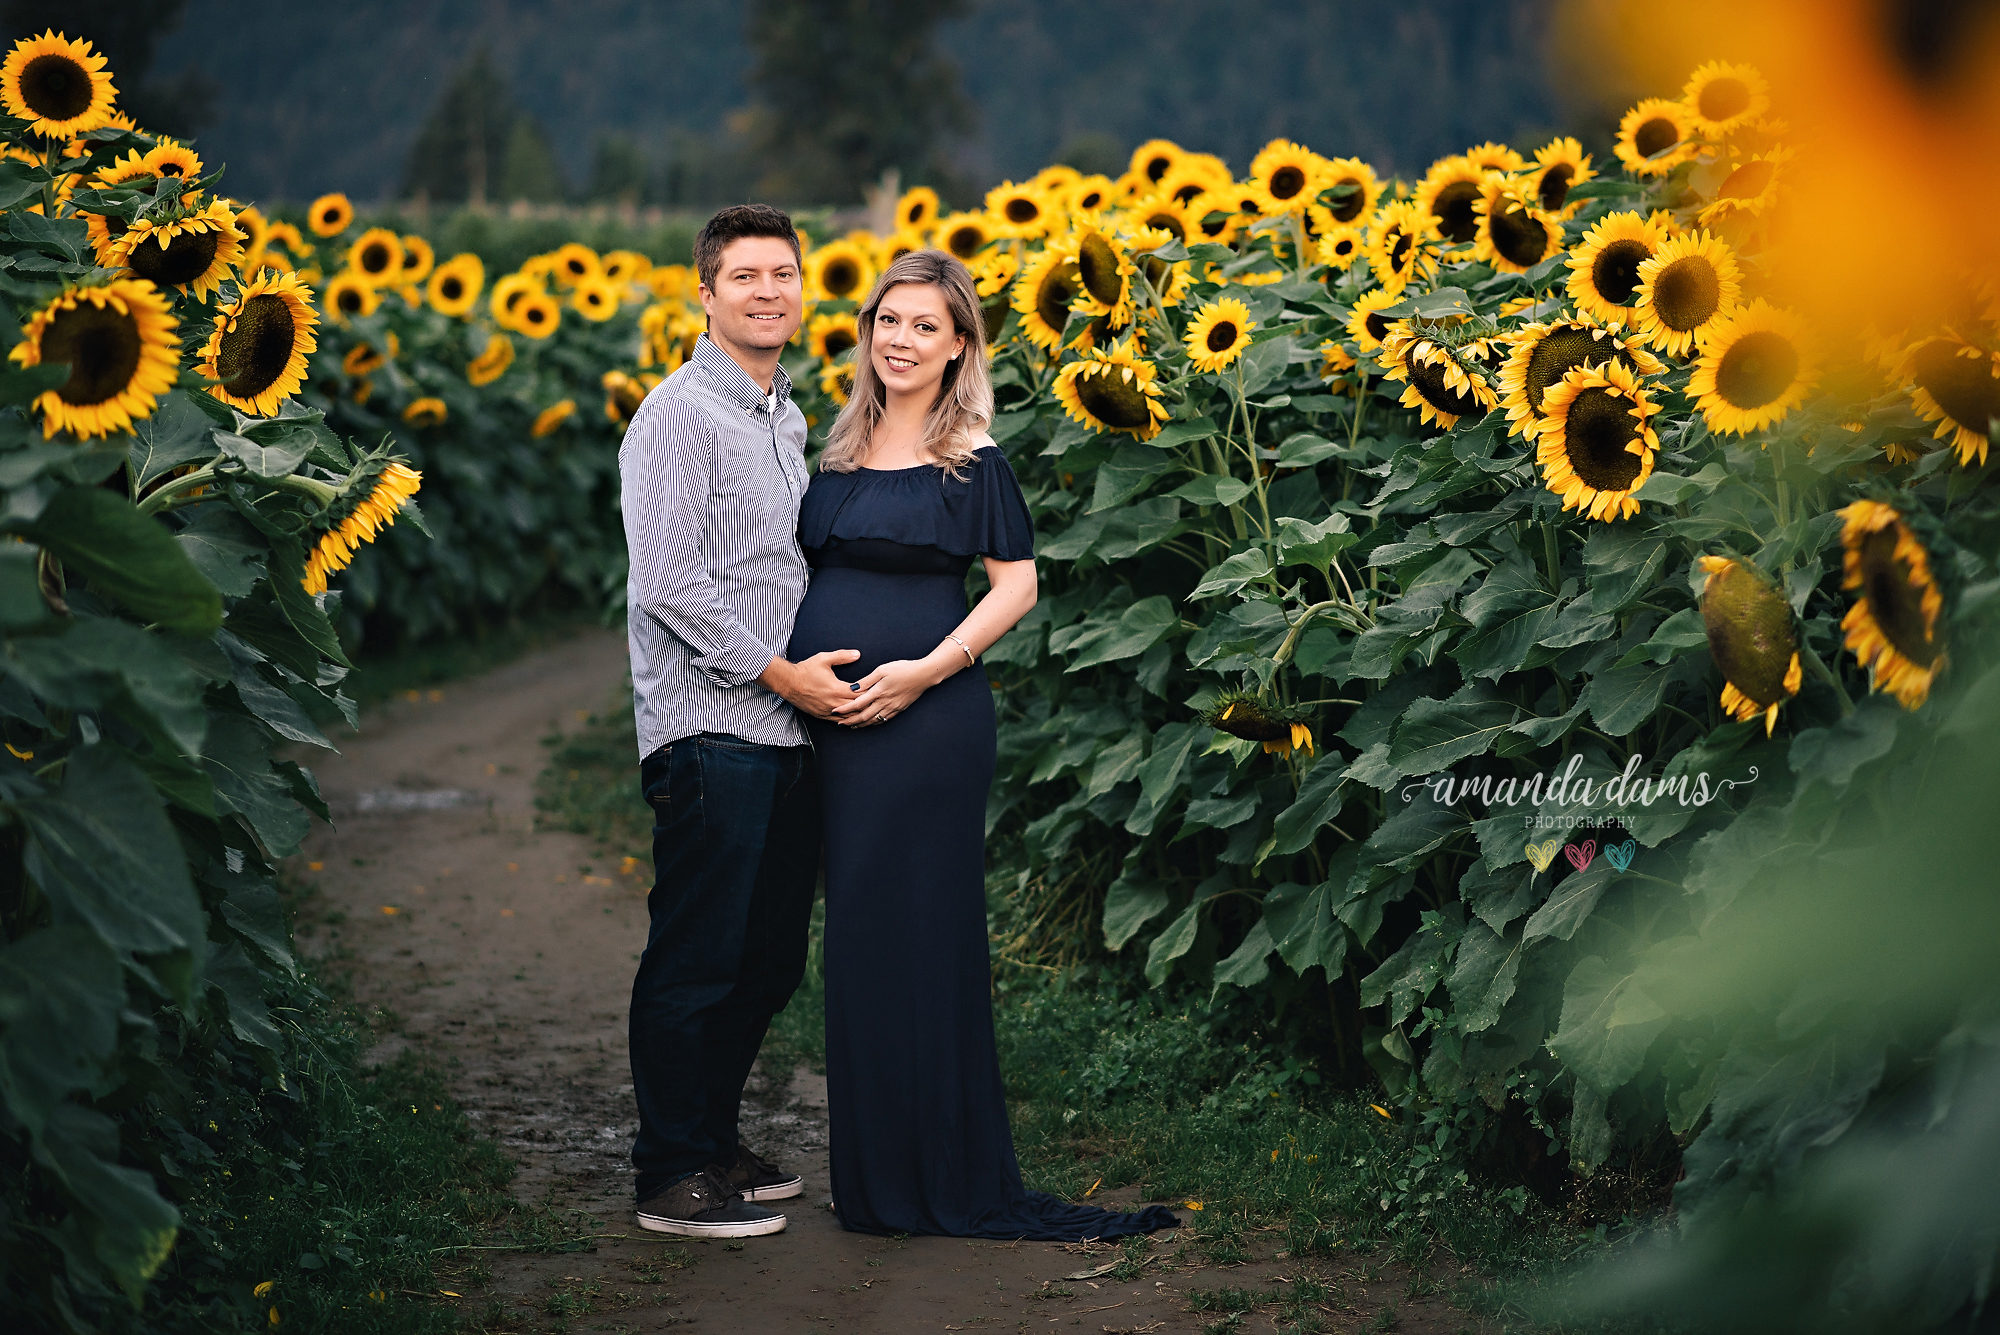 maternity-photo-session-vancouver-sunflower-couple